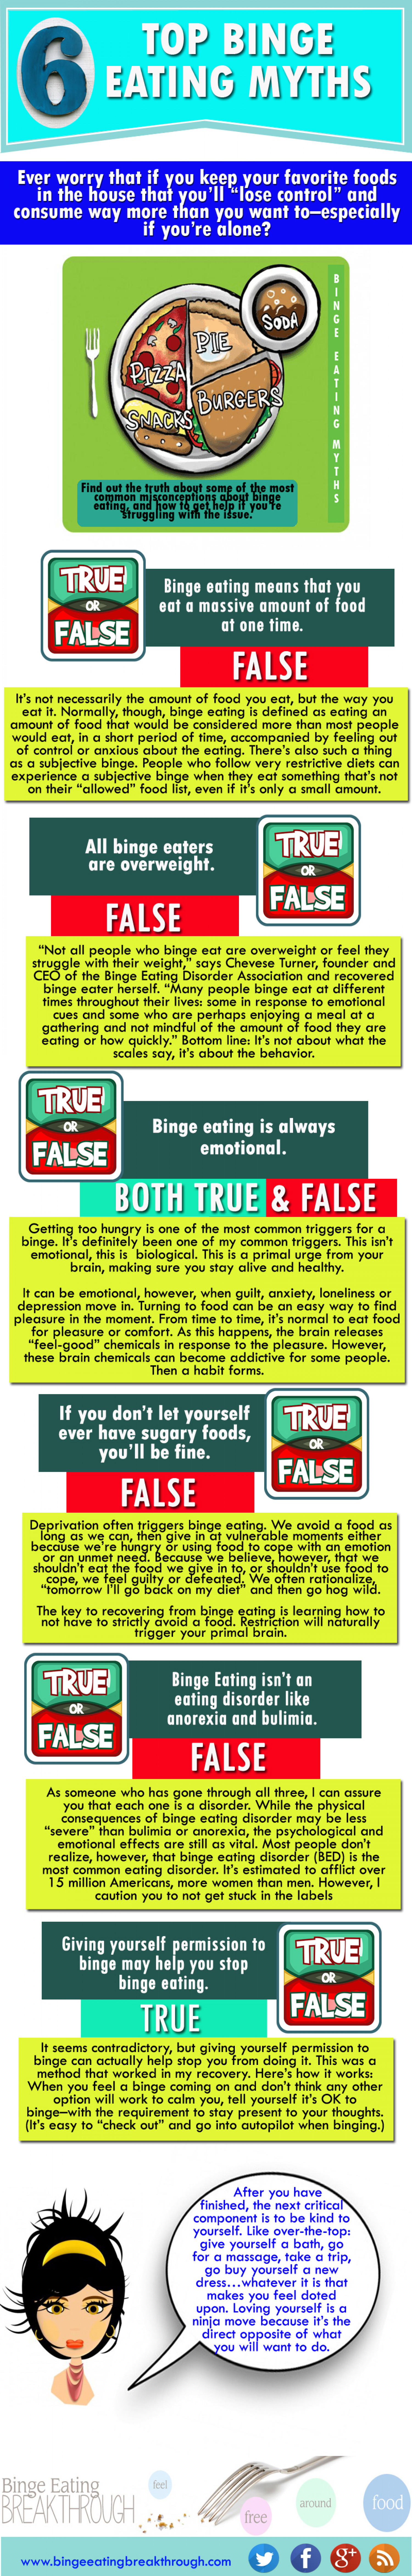 6 Top Binge Eating Myths Infographic